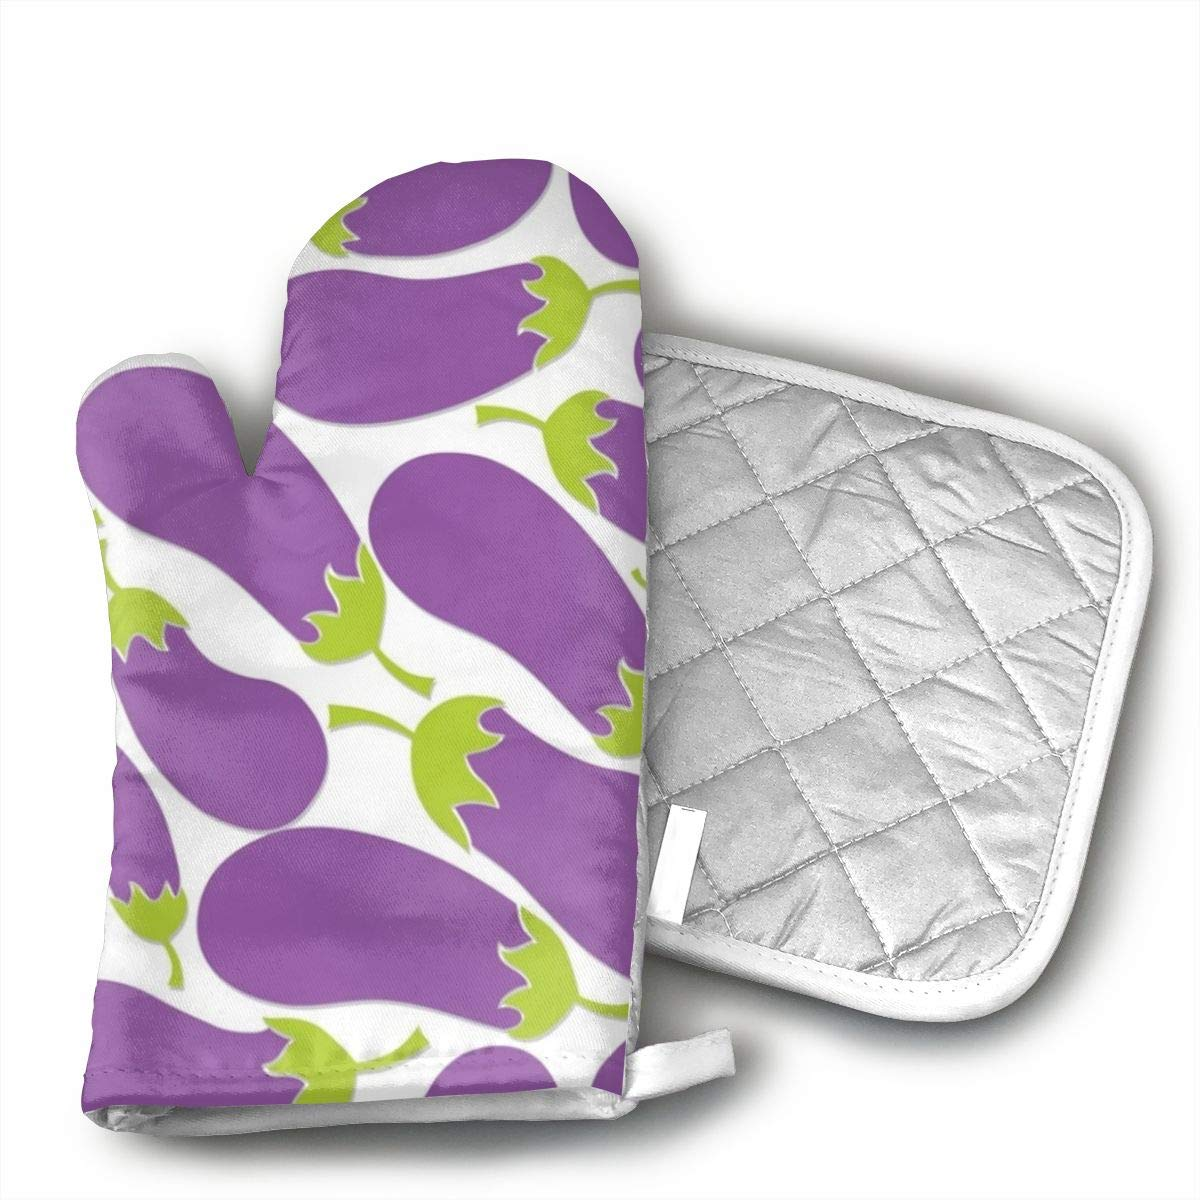 Purple Eggplant Oven Mitts And BBQ Gloves Pot Holders, Heat Resistant Mitts For Finger Hand Wrist Protection With Inner Lining, Kitchen Gloves For Grilling Machine Baking Grilling With Non-Slip